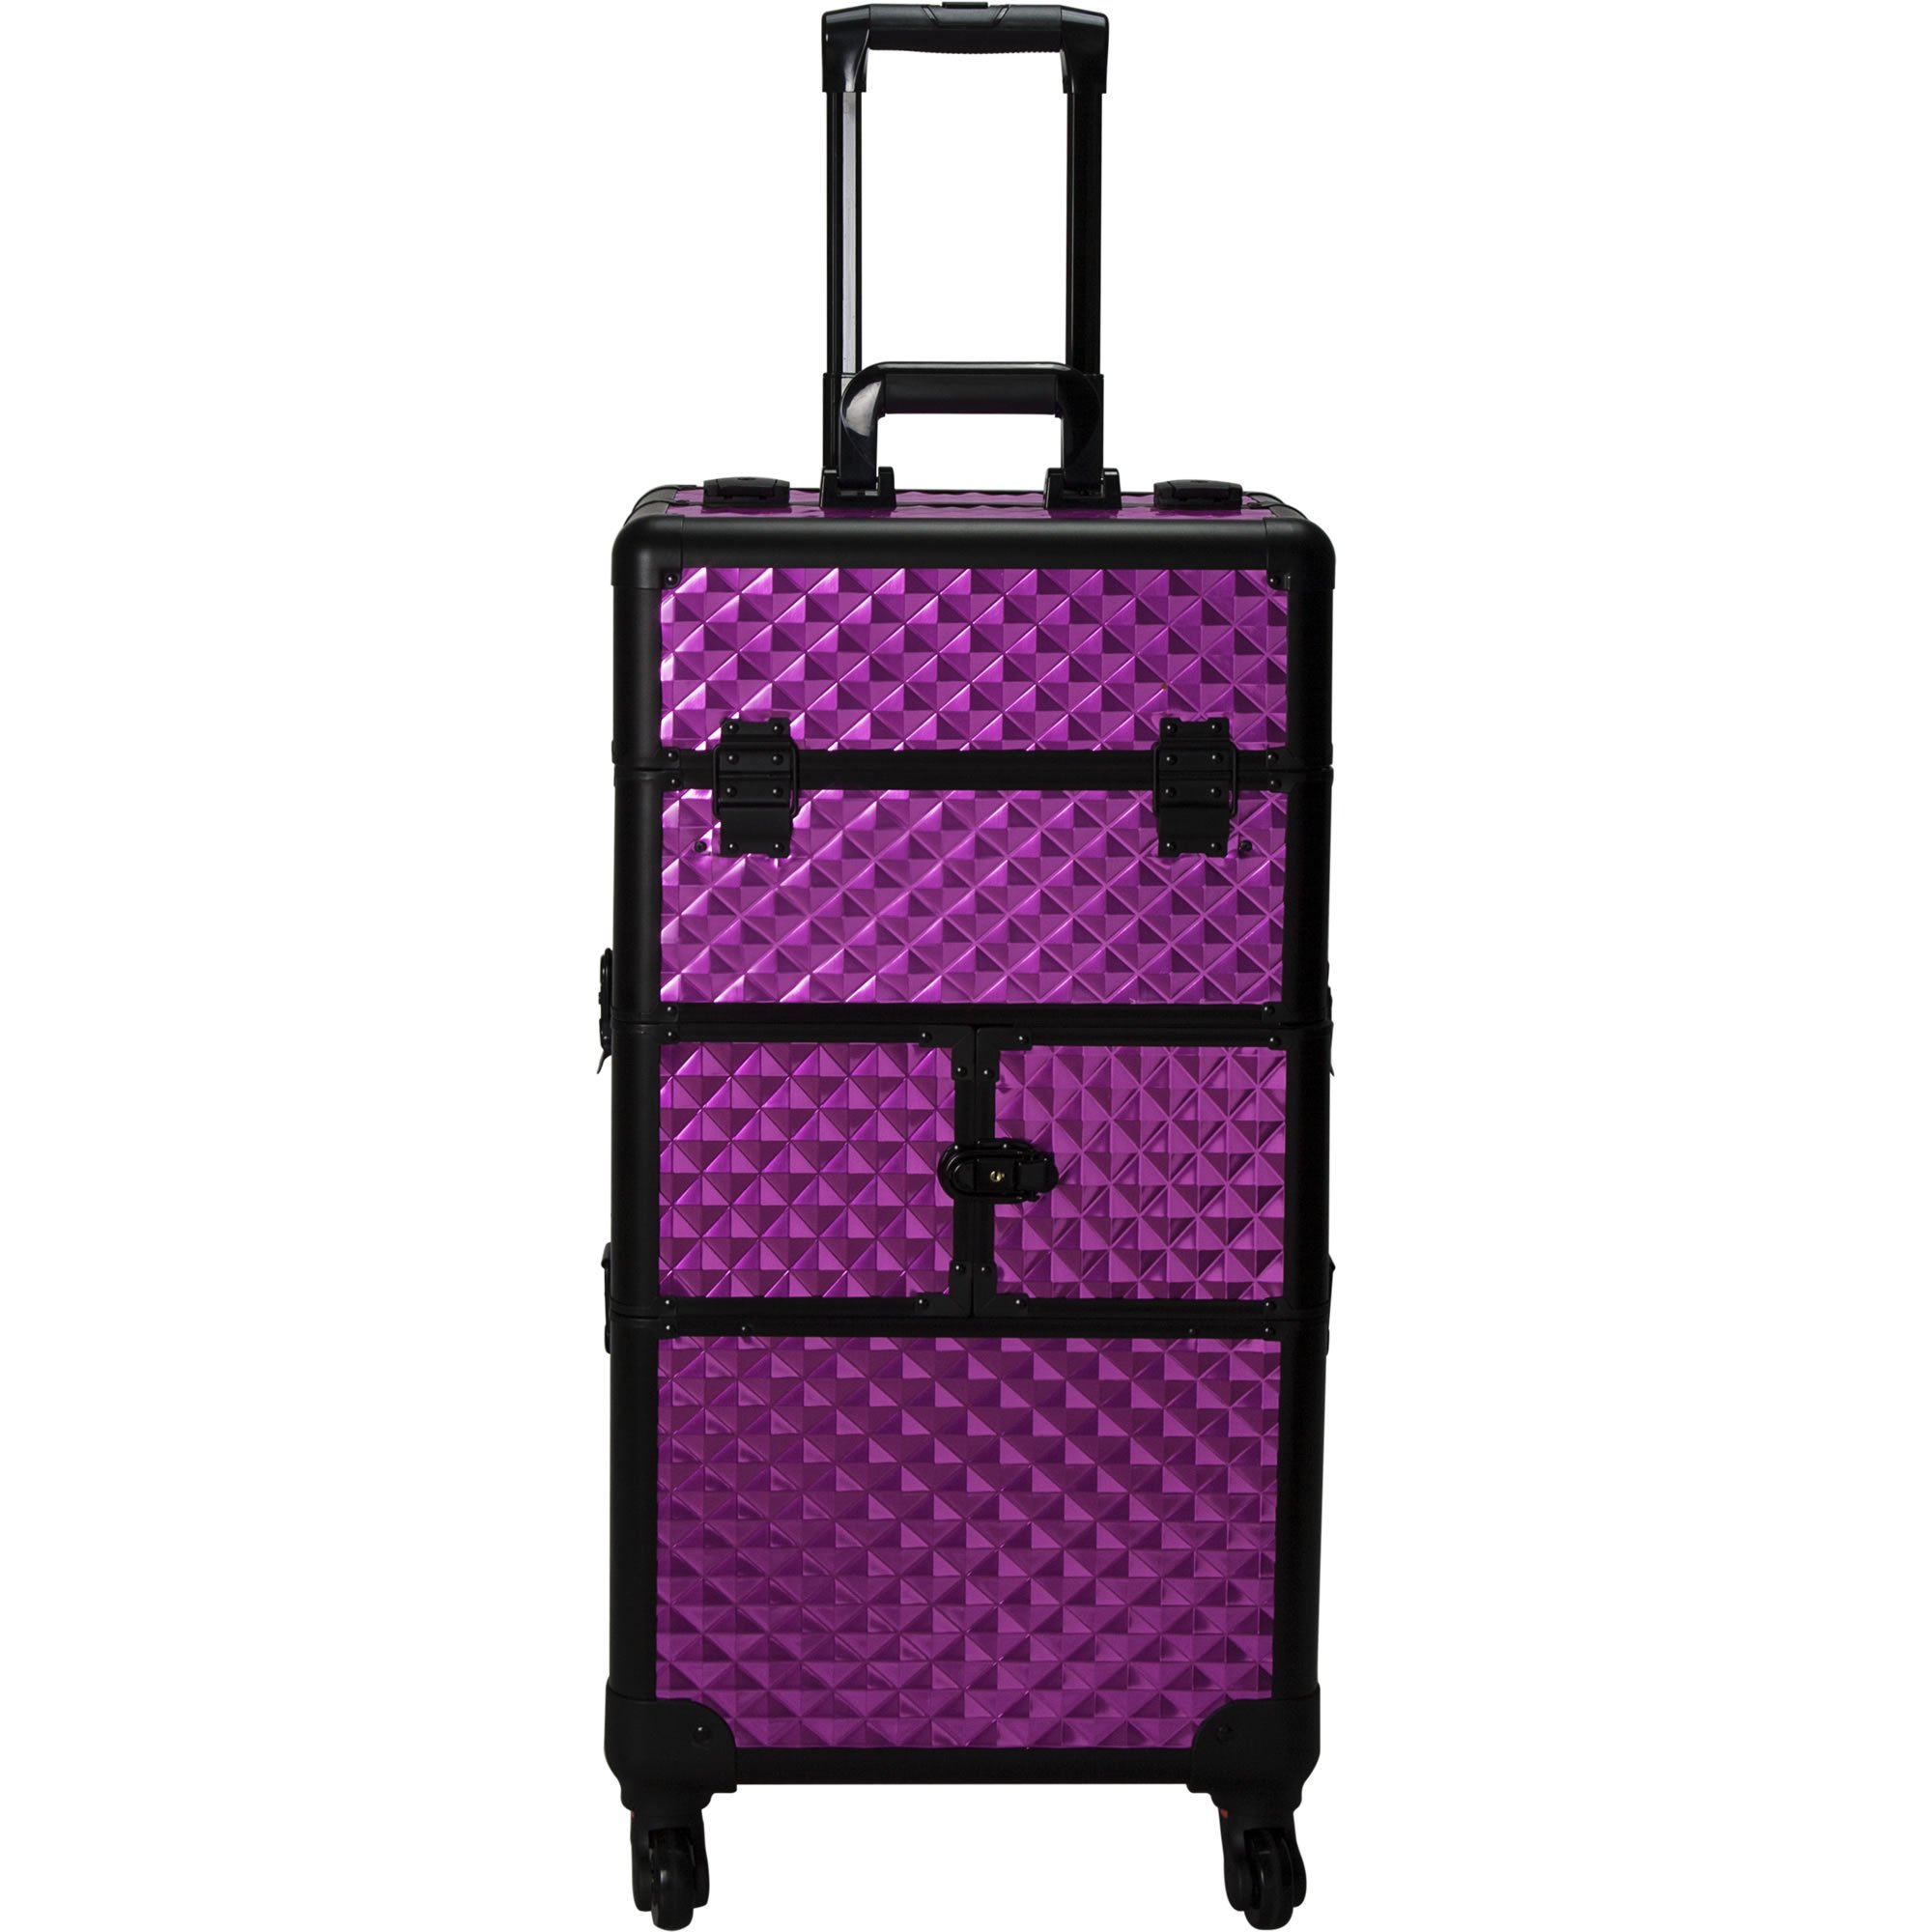 SUNRISE Hair Stylist Case I3164 Makeup Train Organizer, 4 Wheel Spinner, 10 Slide Trays, Locking with Mirror and Shoulder Strap, Purple Diamond by SunRise